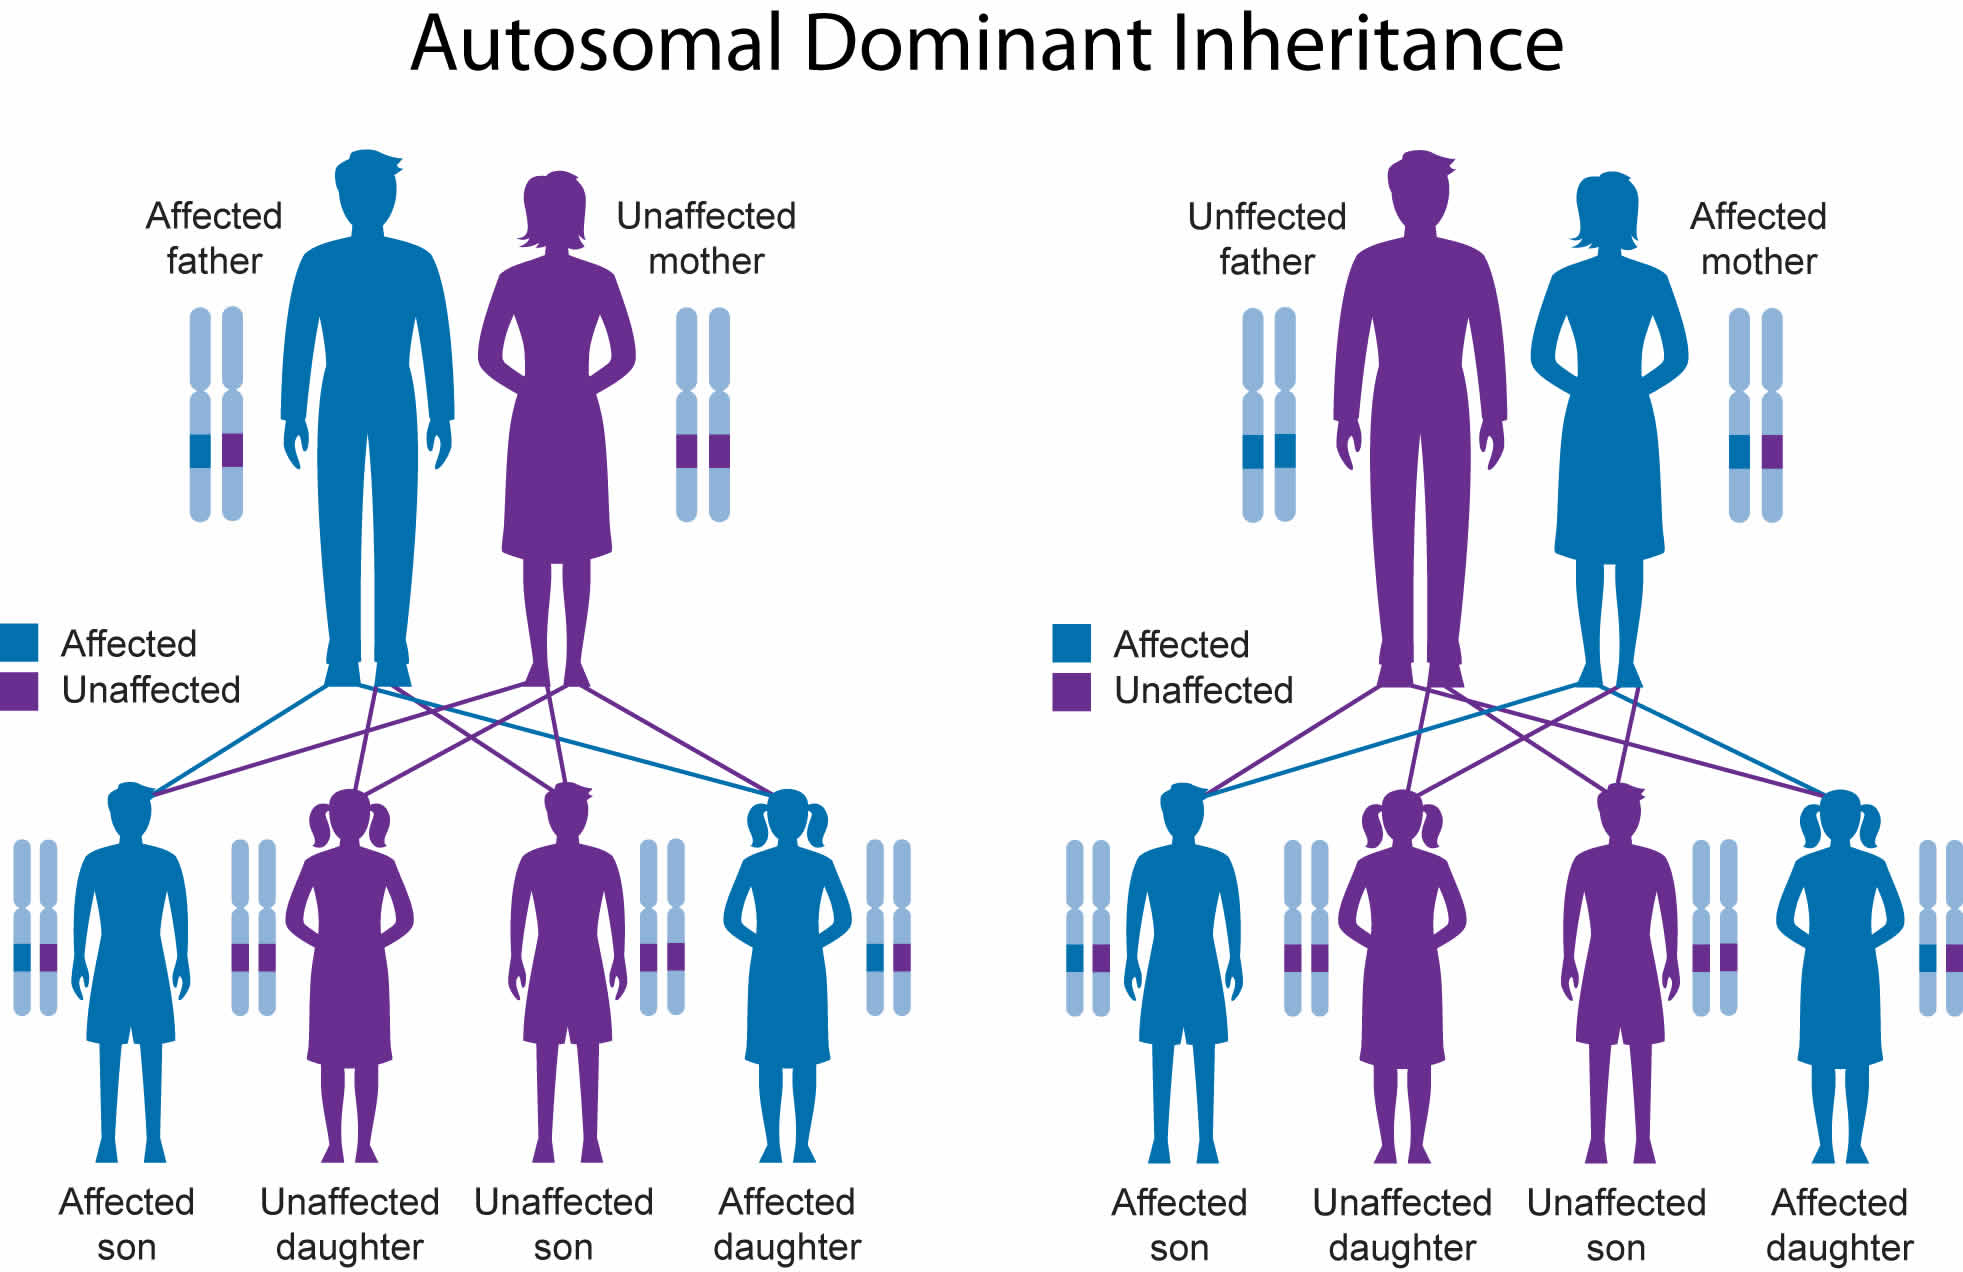 Apert syndrome autosomal dominant inheritance pattern